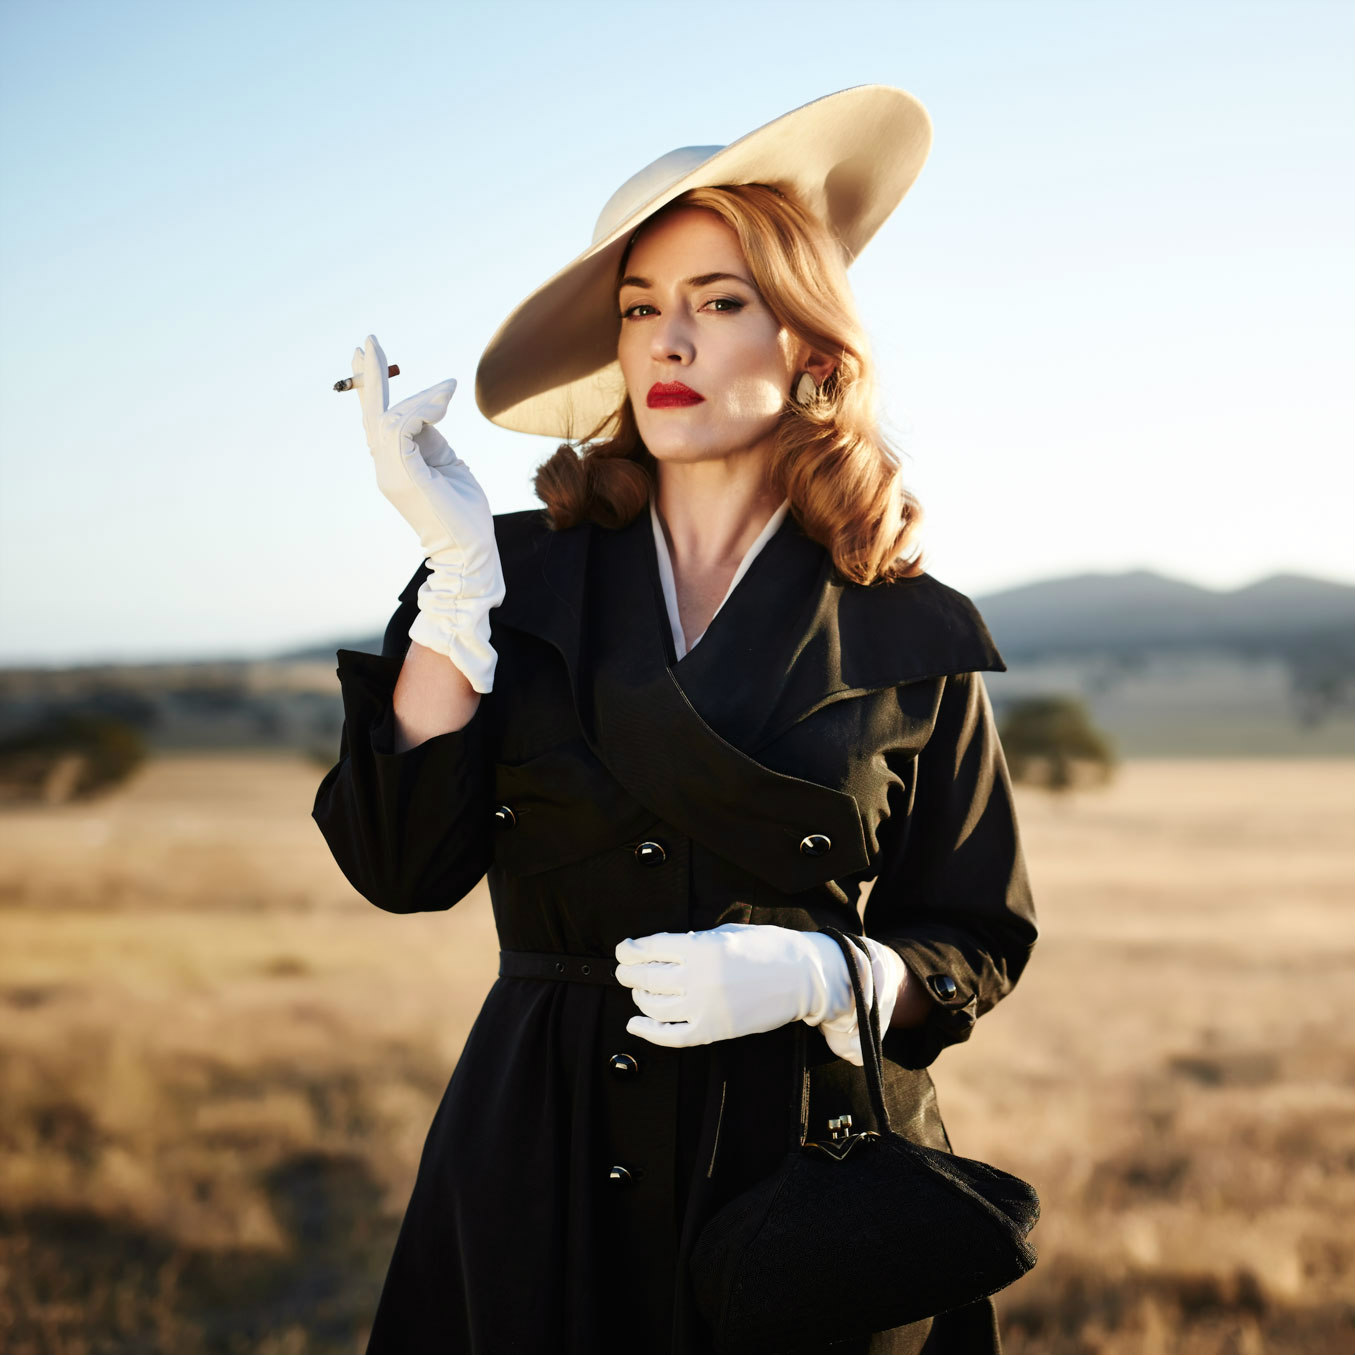 #107 | The Dressmaker 2: The Hemsworth Curse